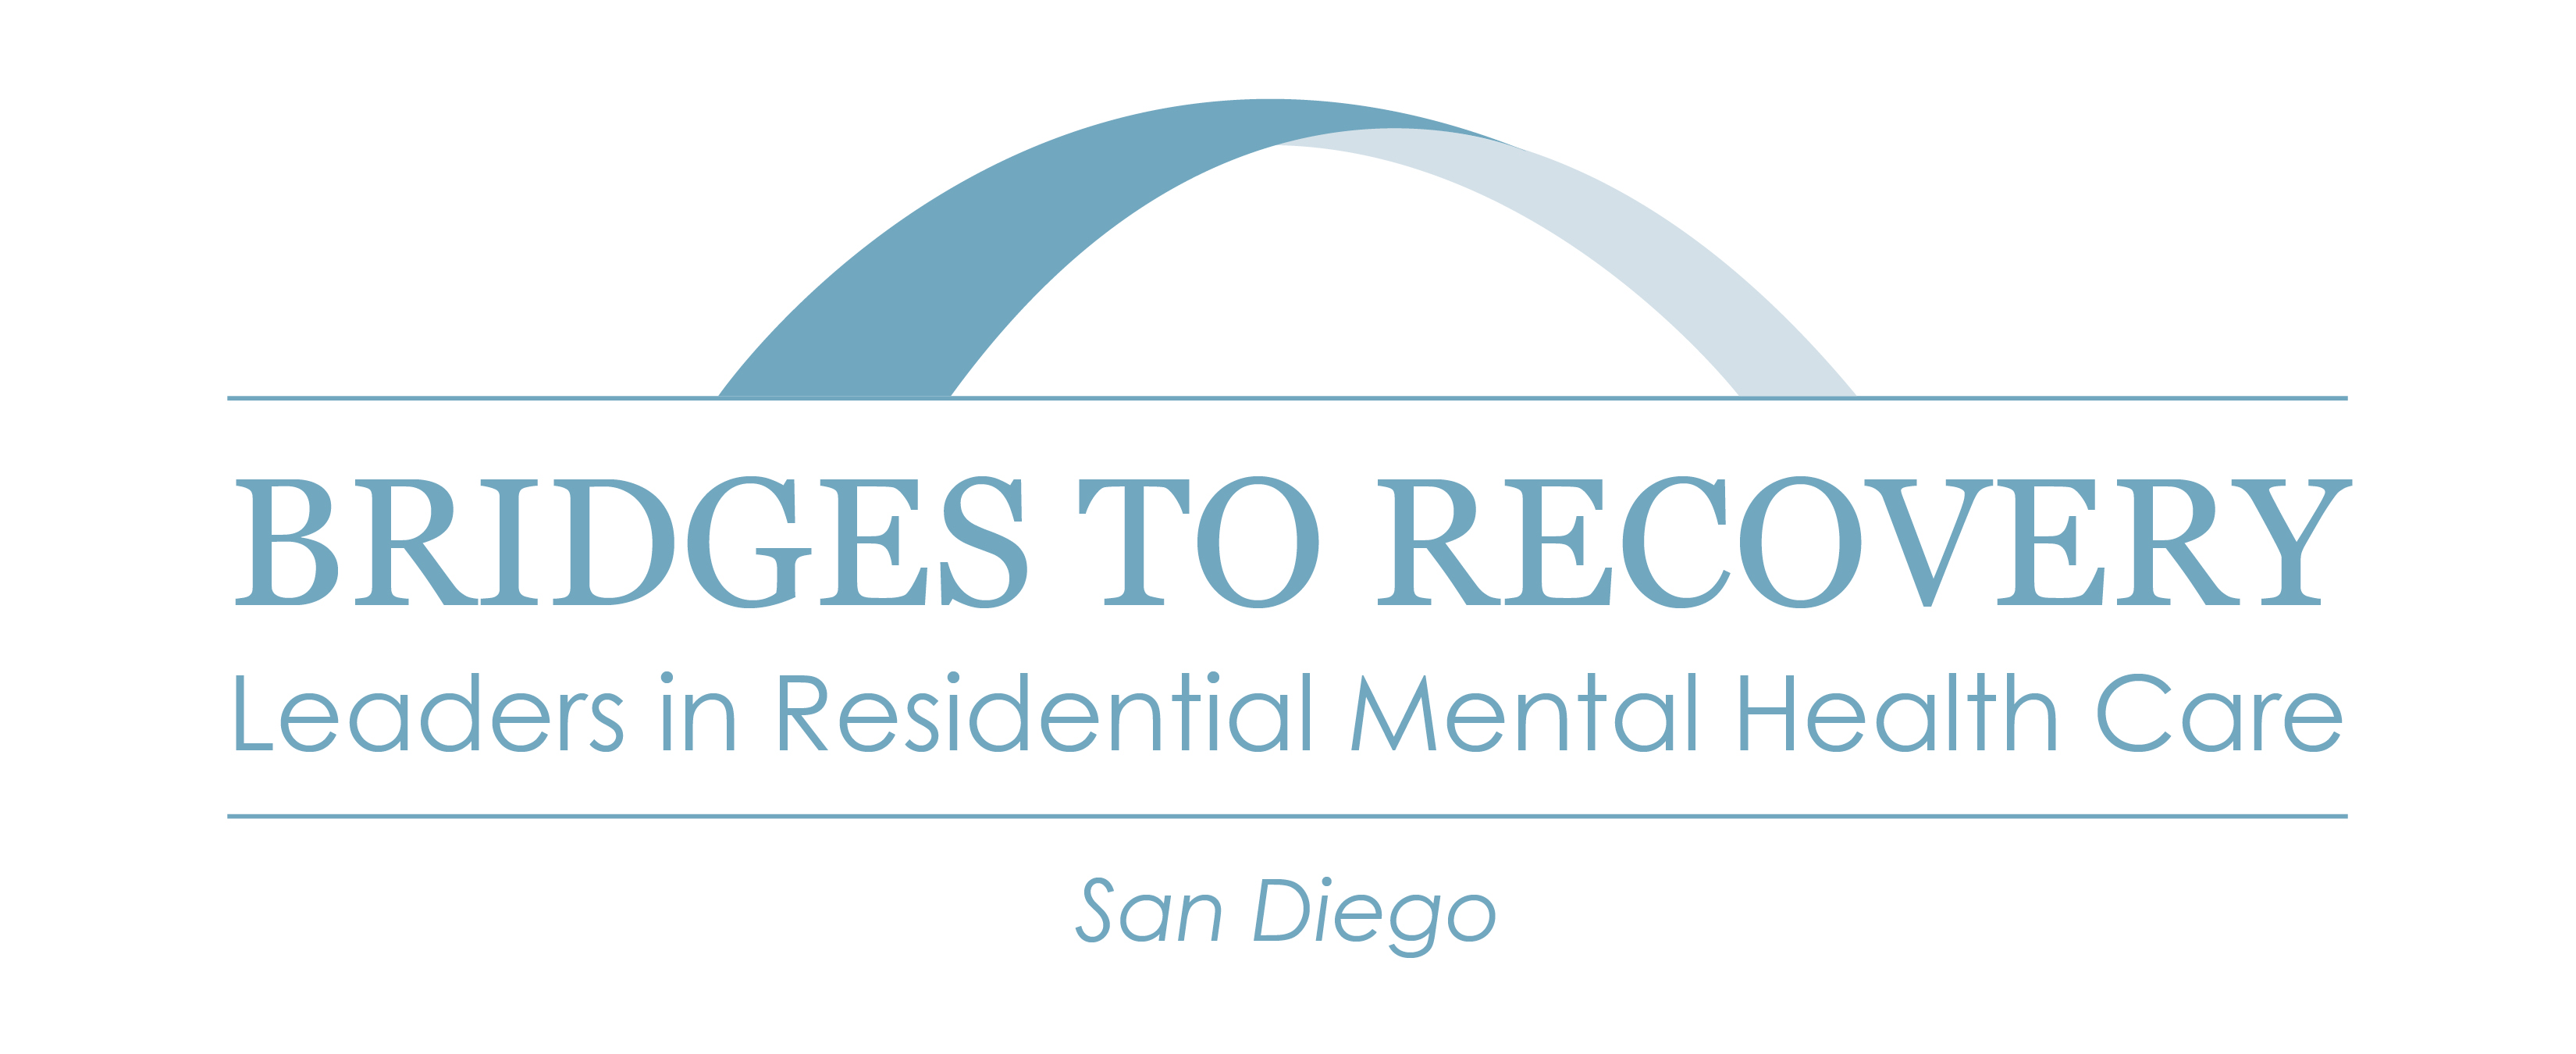 Bridges to Recovery -San Diego logo